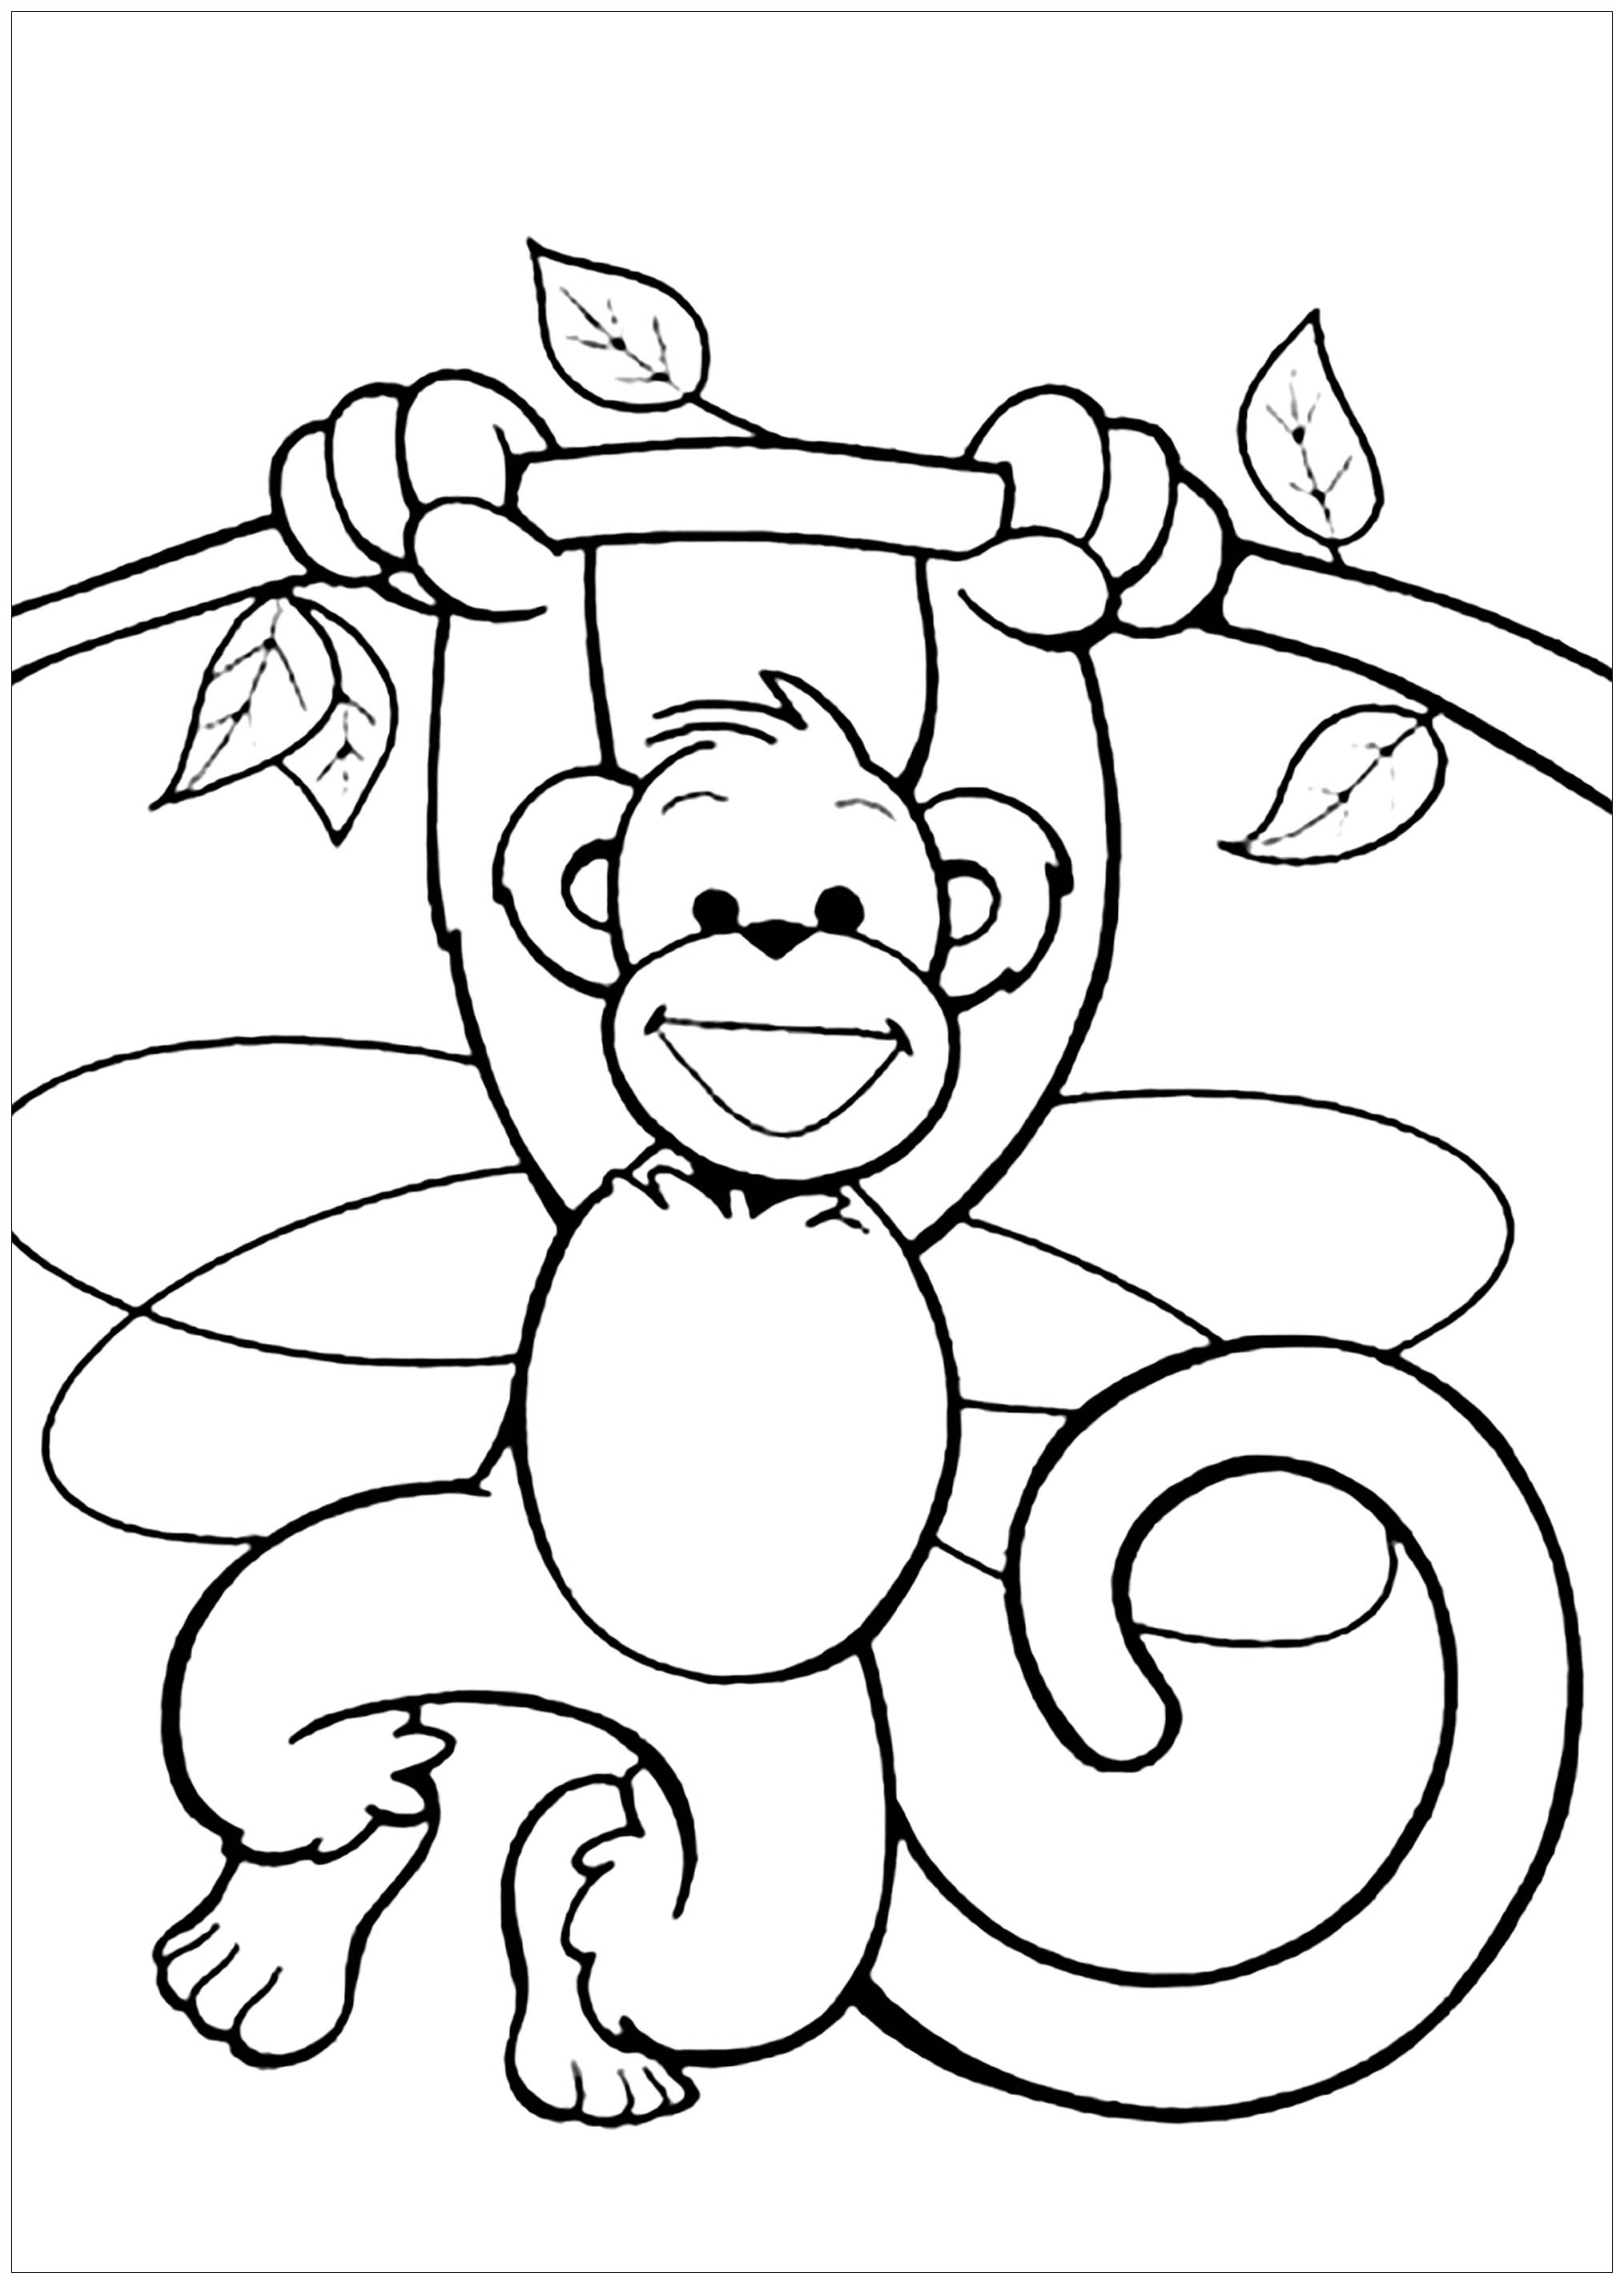 monkey pictures for coloring monkey coloring pages free download on clipartmag coloring pictures for monkey